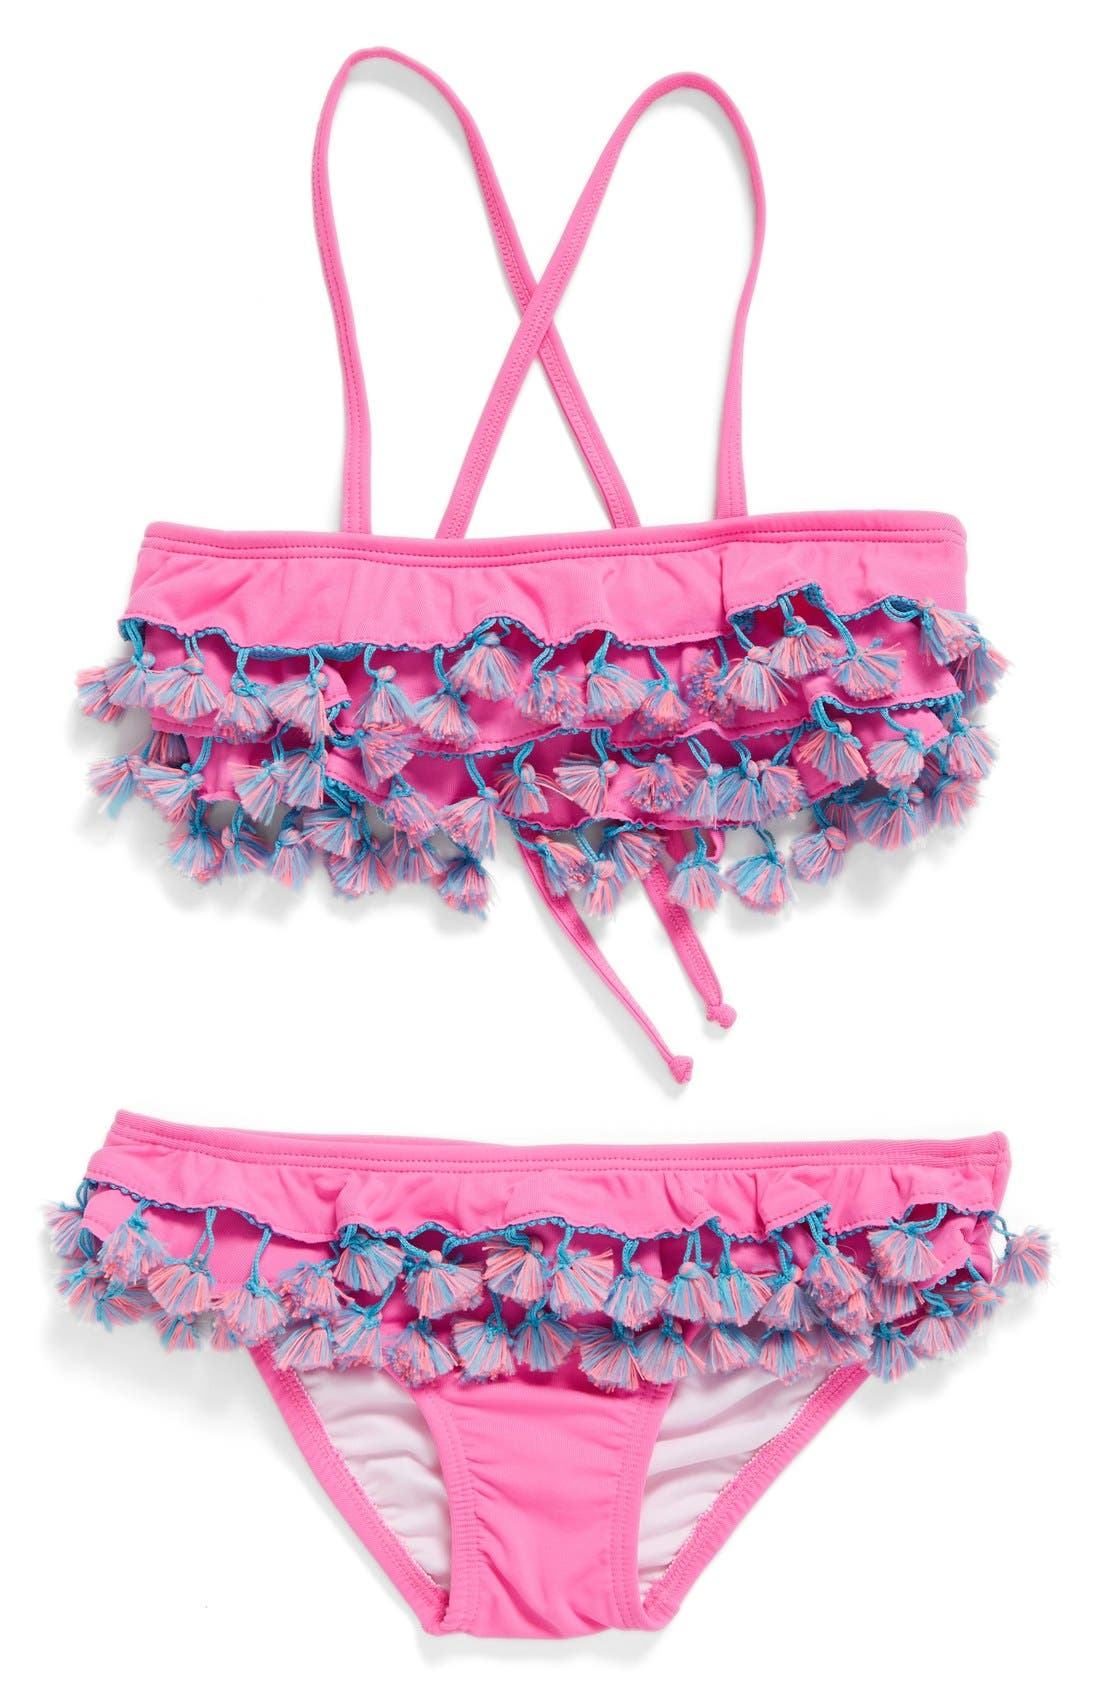 Tassel Ruffle Two-Piece Swimsuit,                             Main thumbnail 1, color,                             670